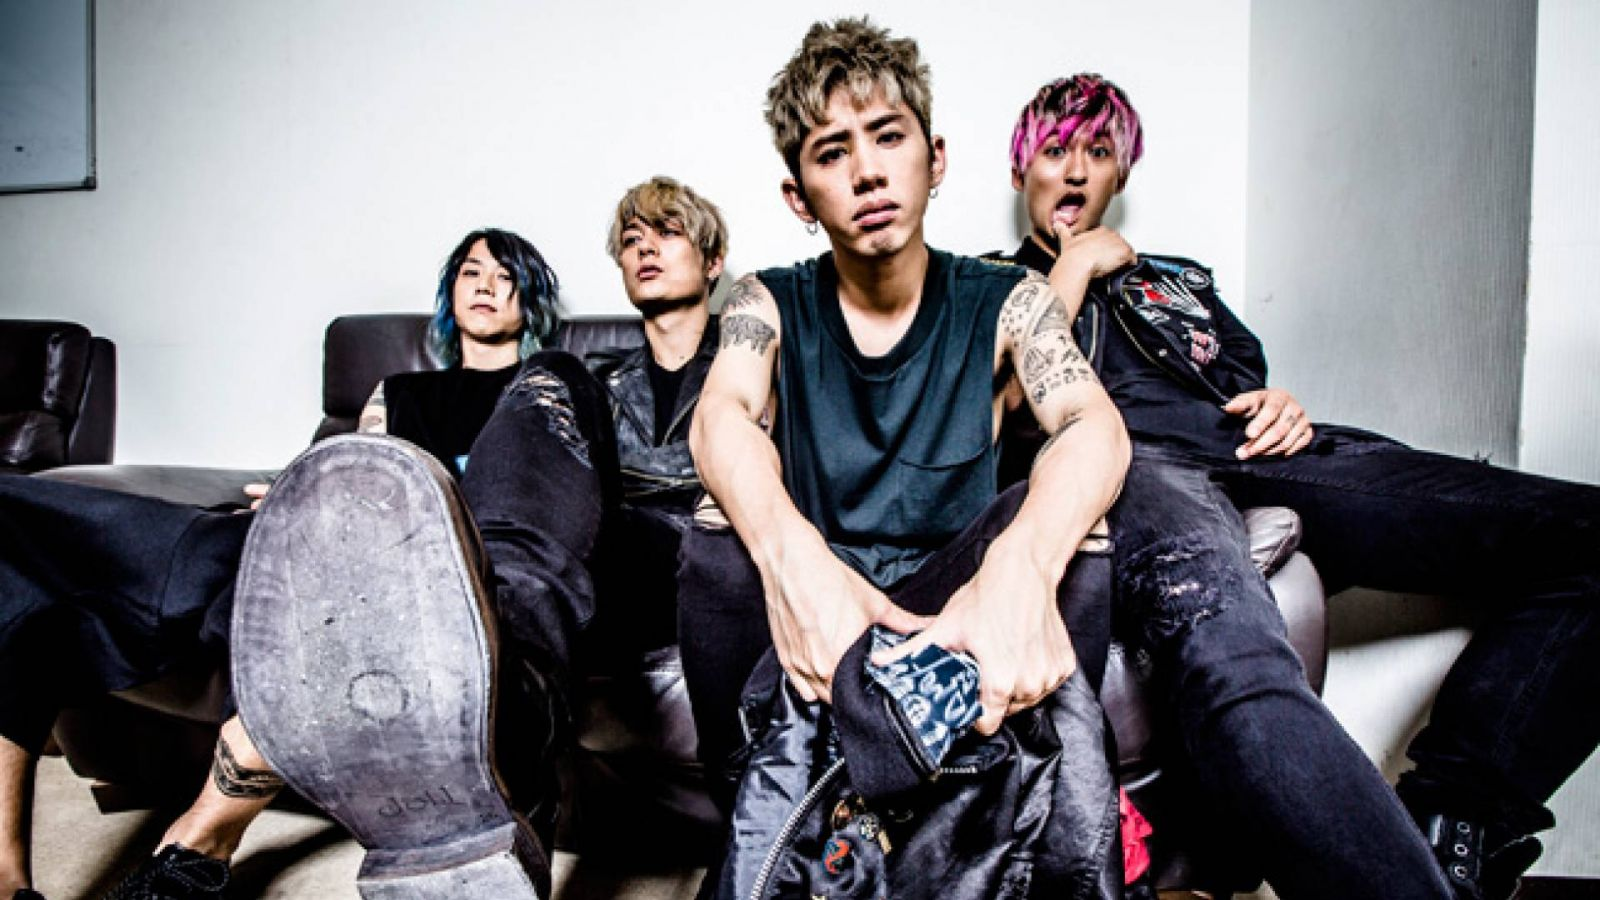 ONE OK ROCK de volta ao Brasil! © AMUSE INC. All rights reserved.